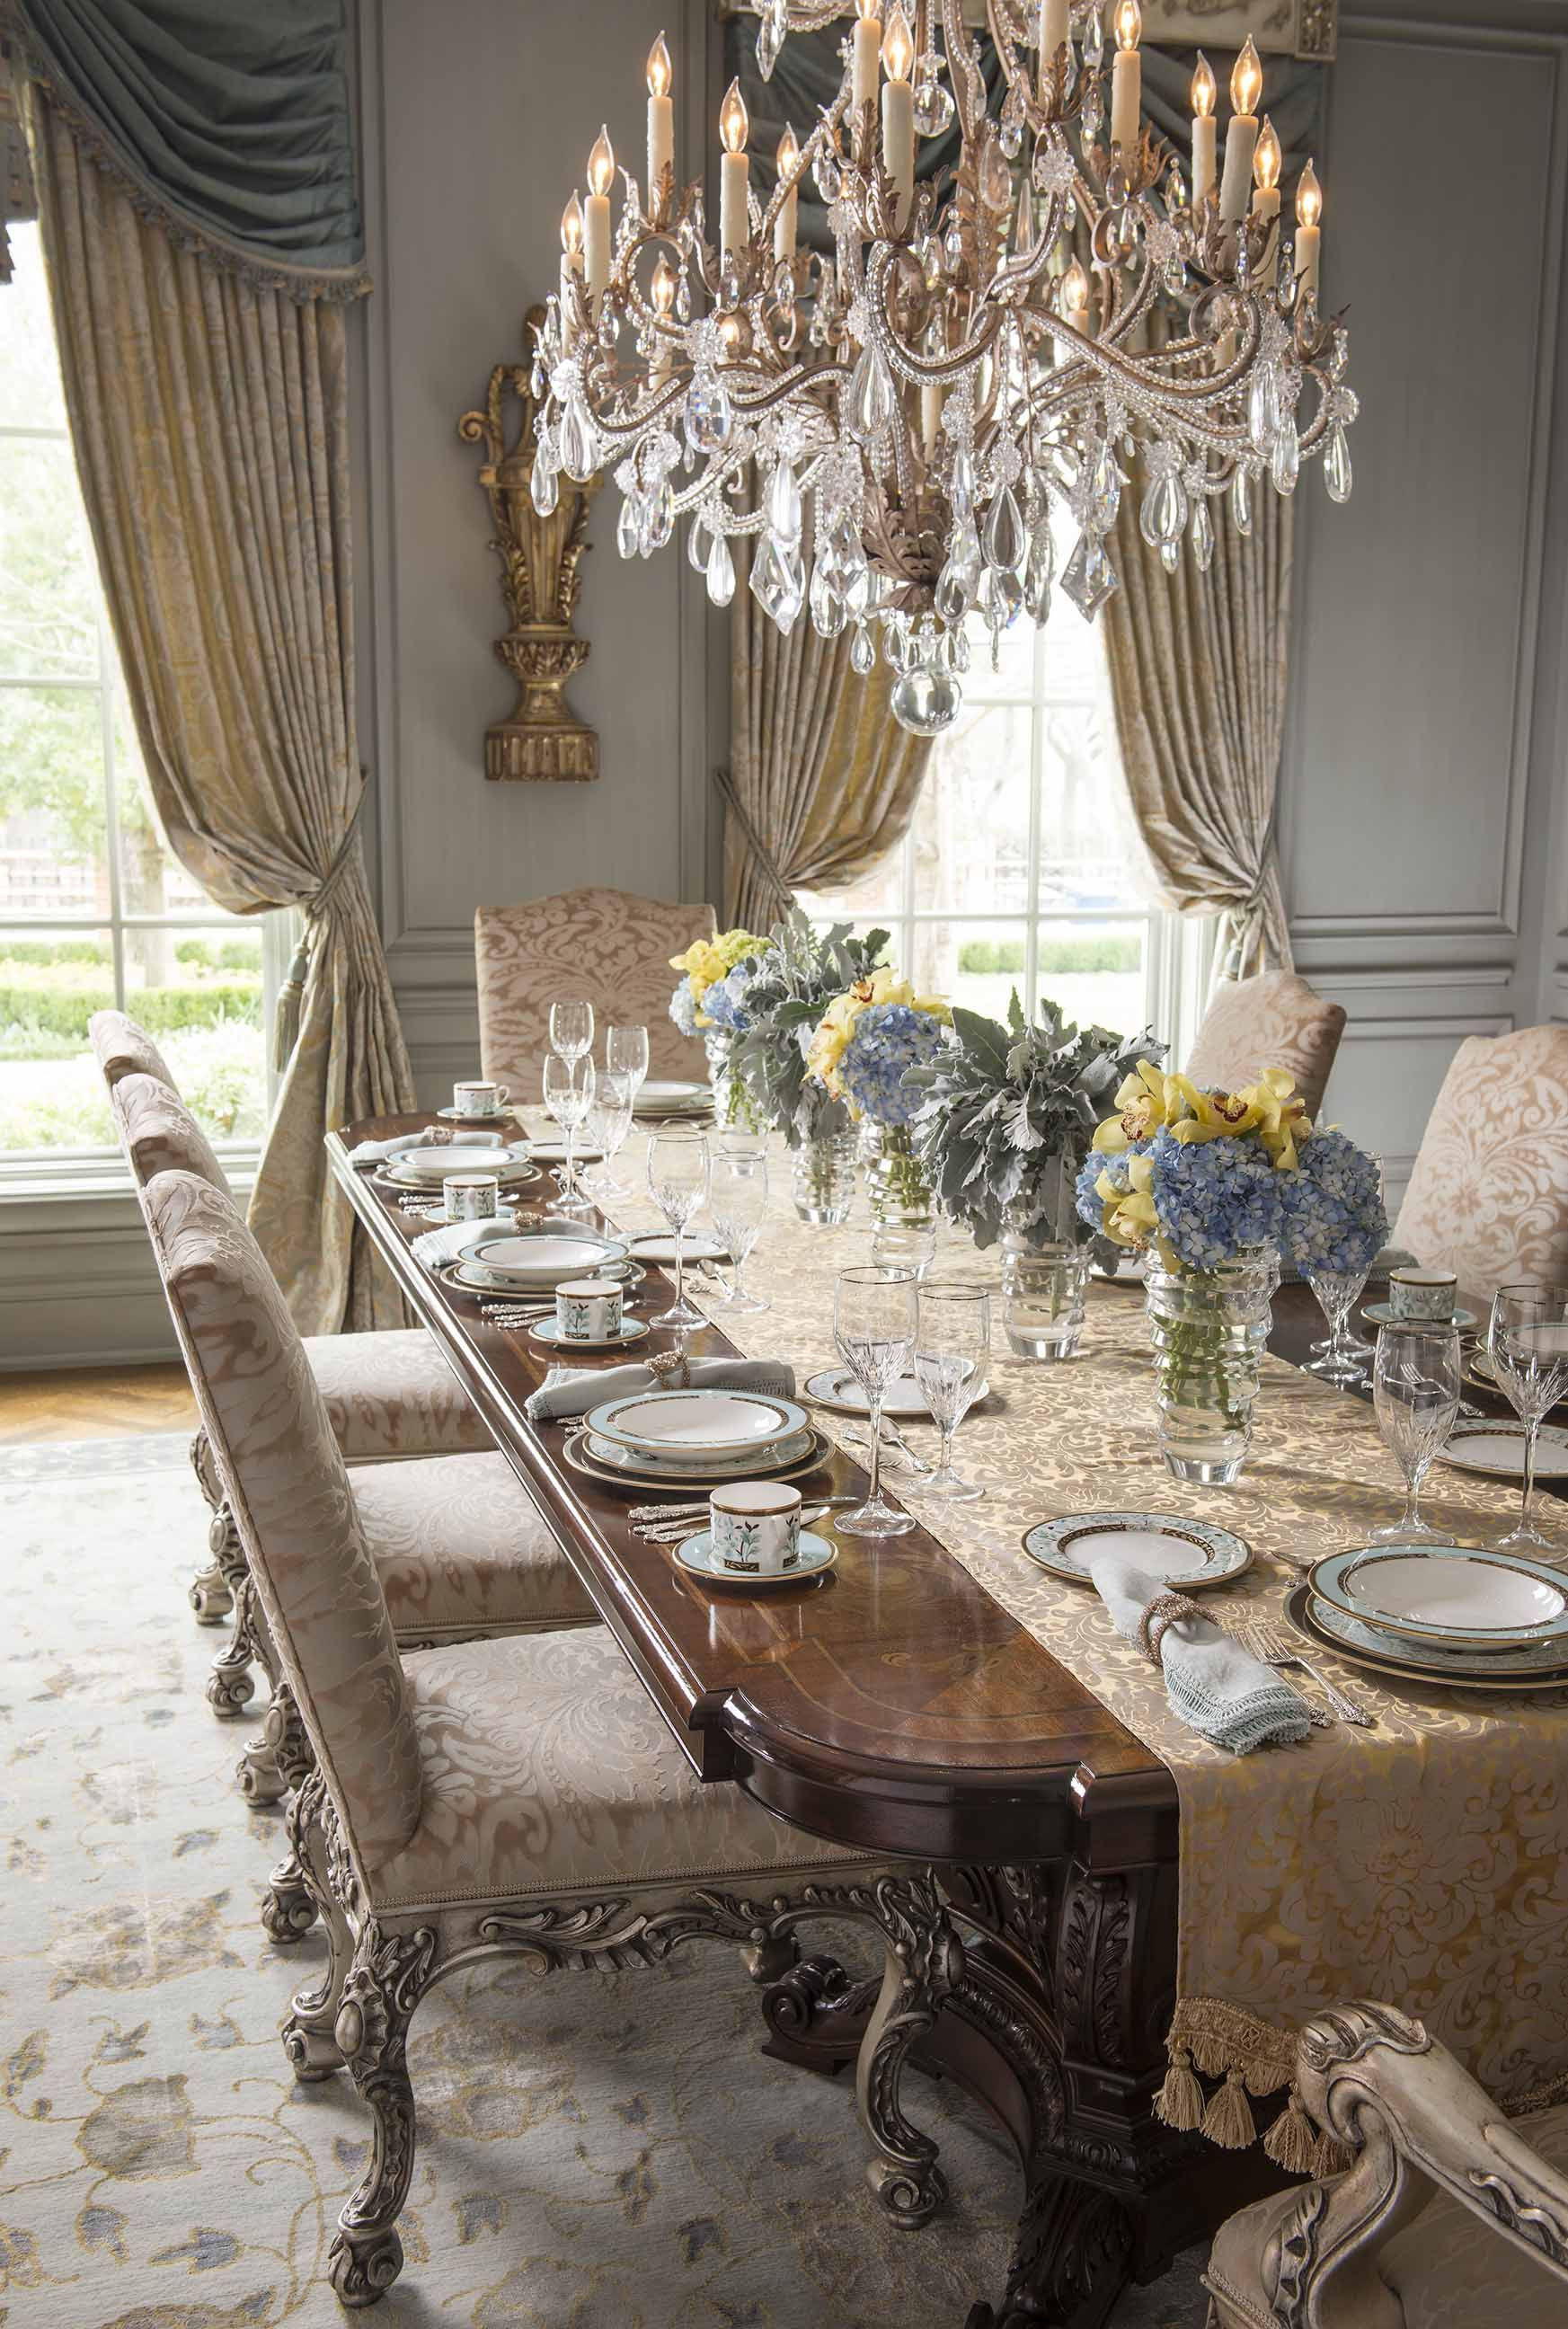 Charming DallasDesignGroup | Portfolio | Project | A Magical Elegance · Dining Room  LightingLuxury ...